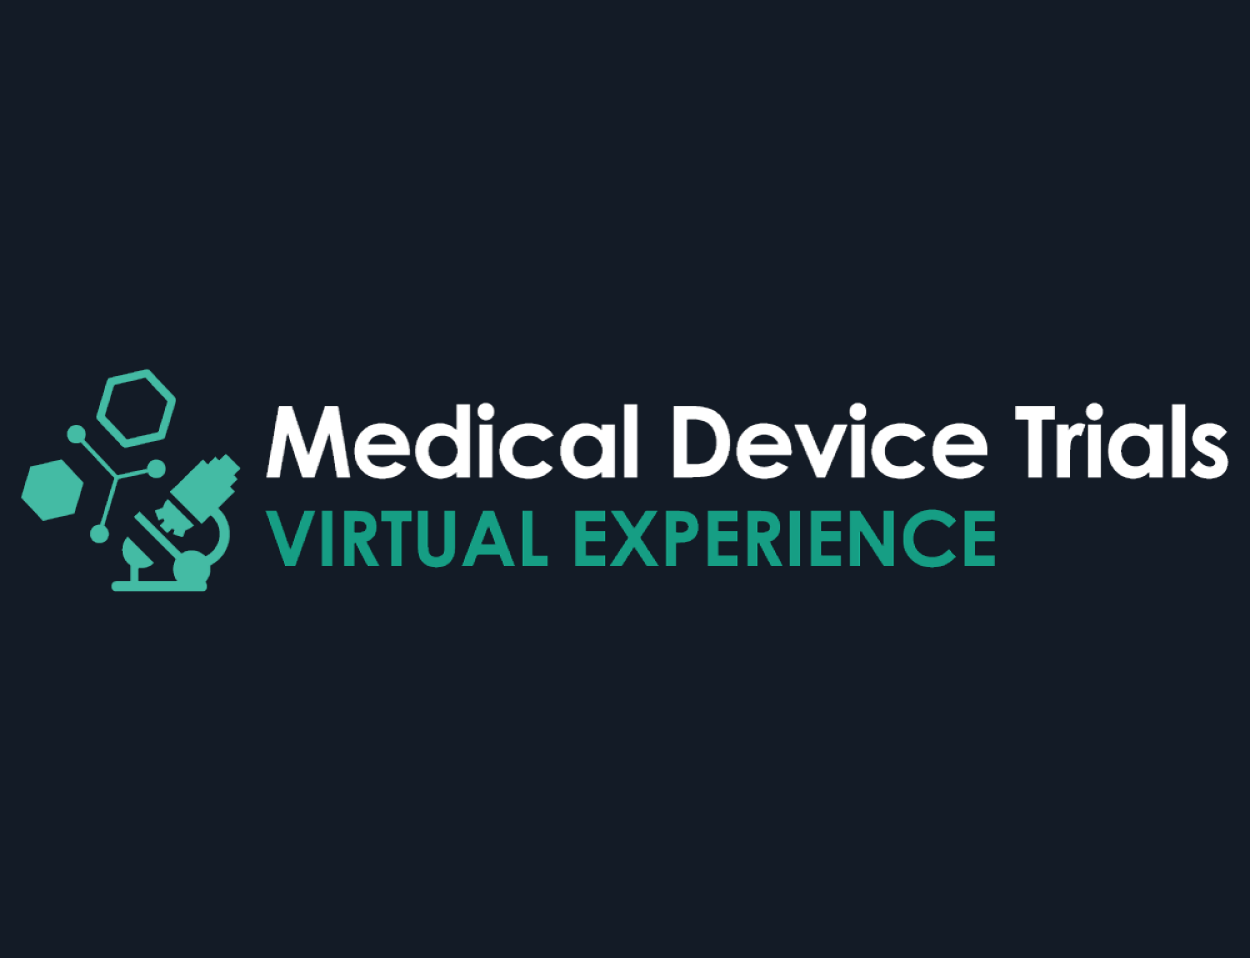 Medical Device Trials: A Virtual Experience